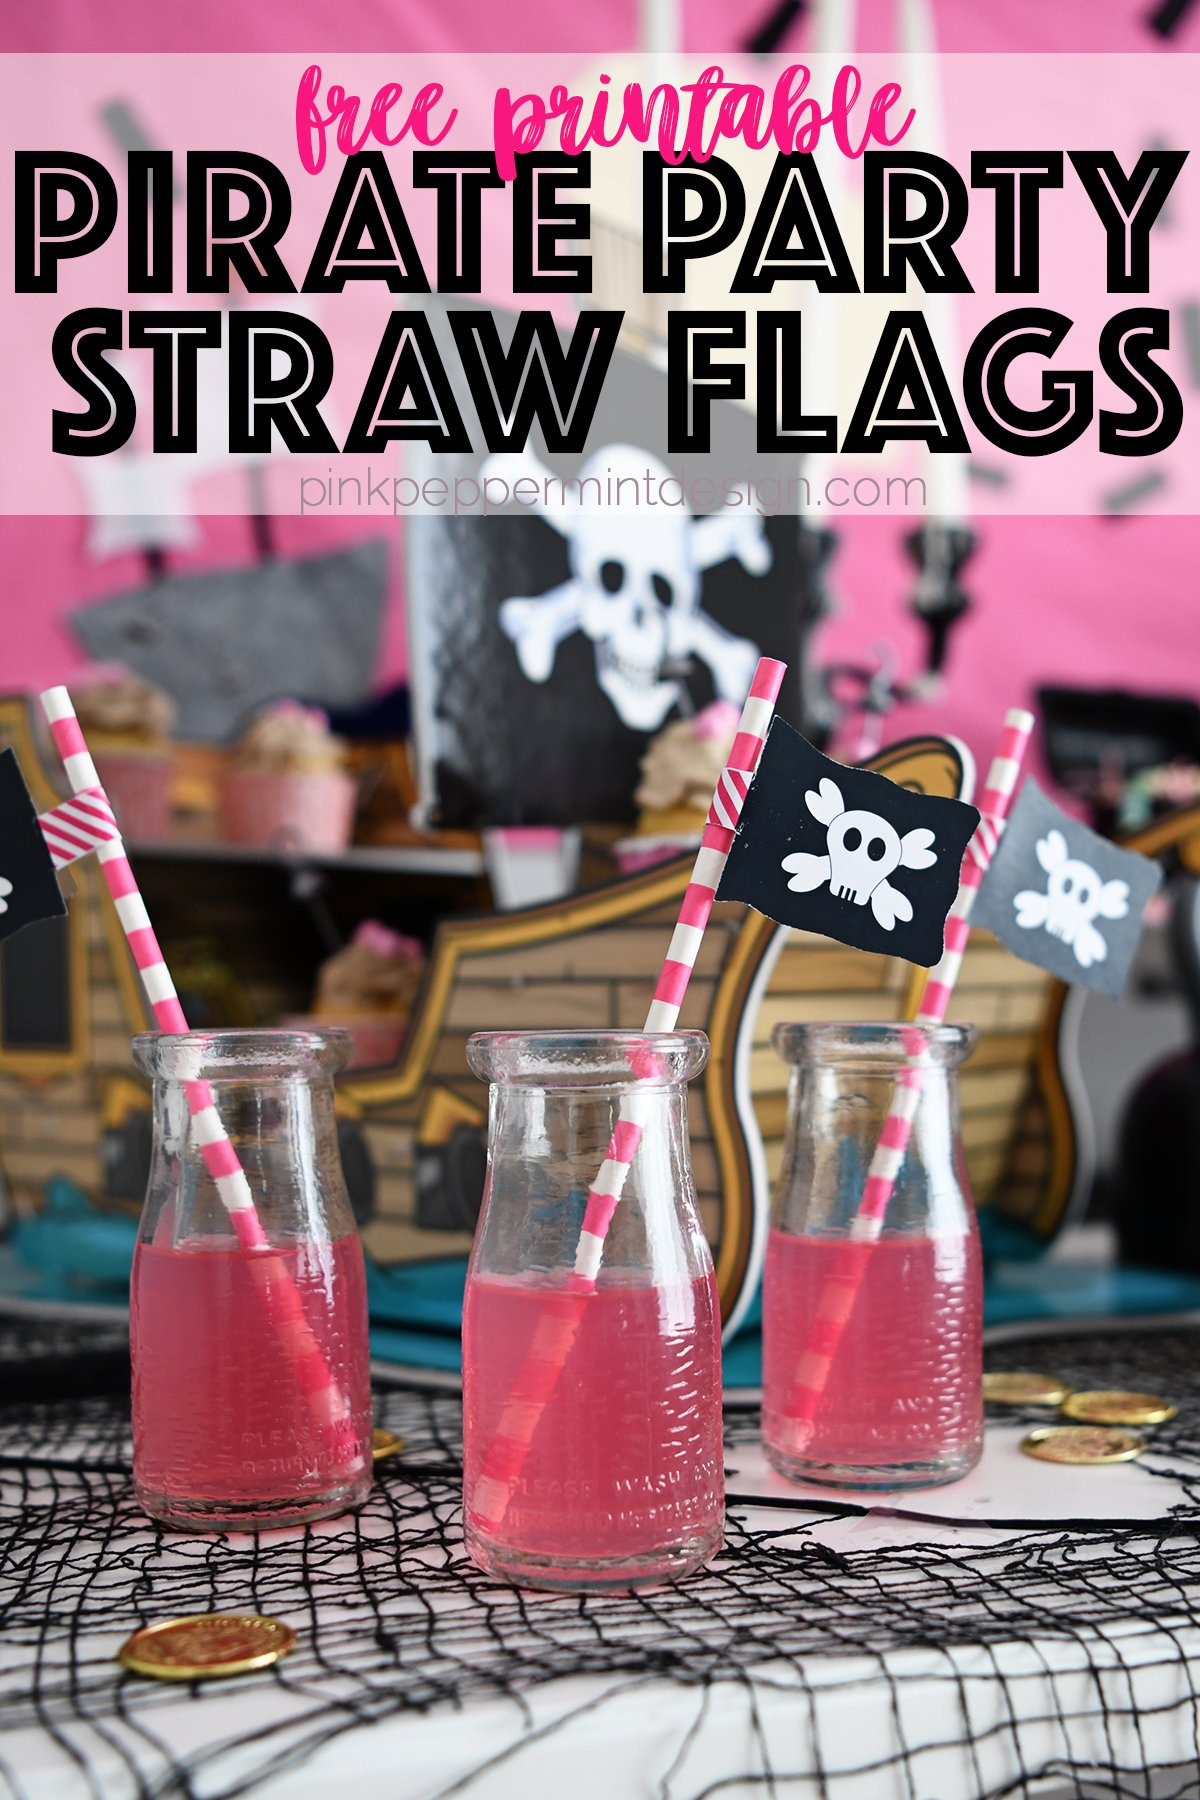 Free printable pirate party flags